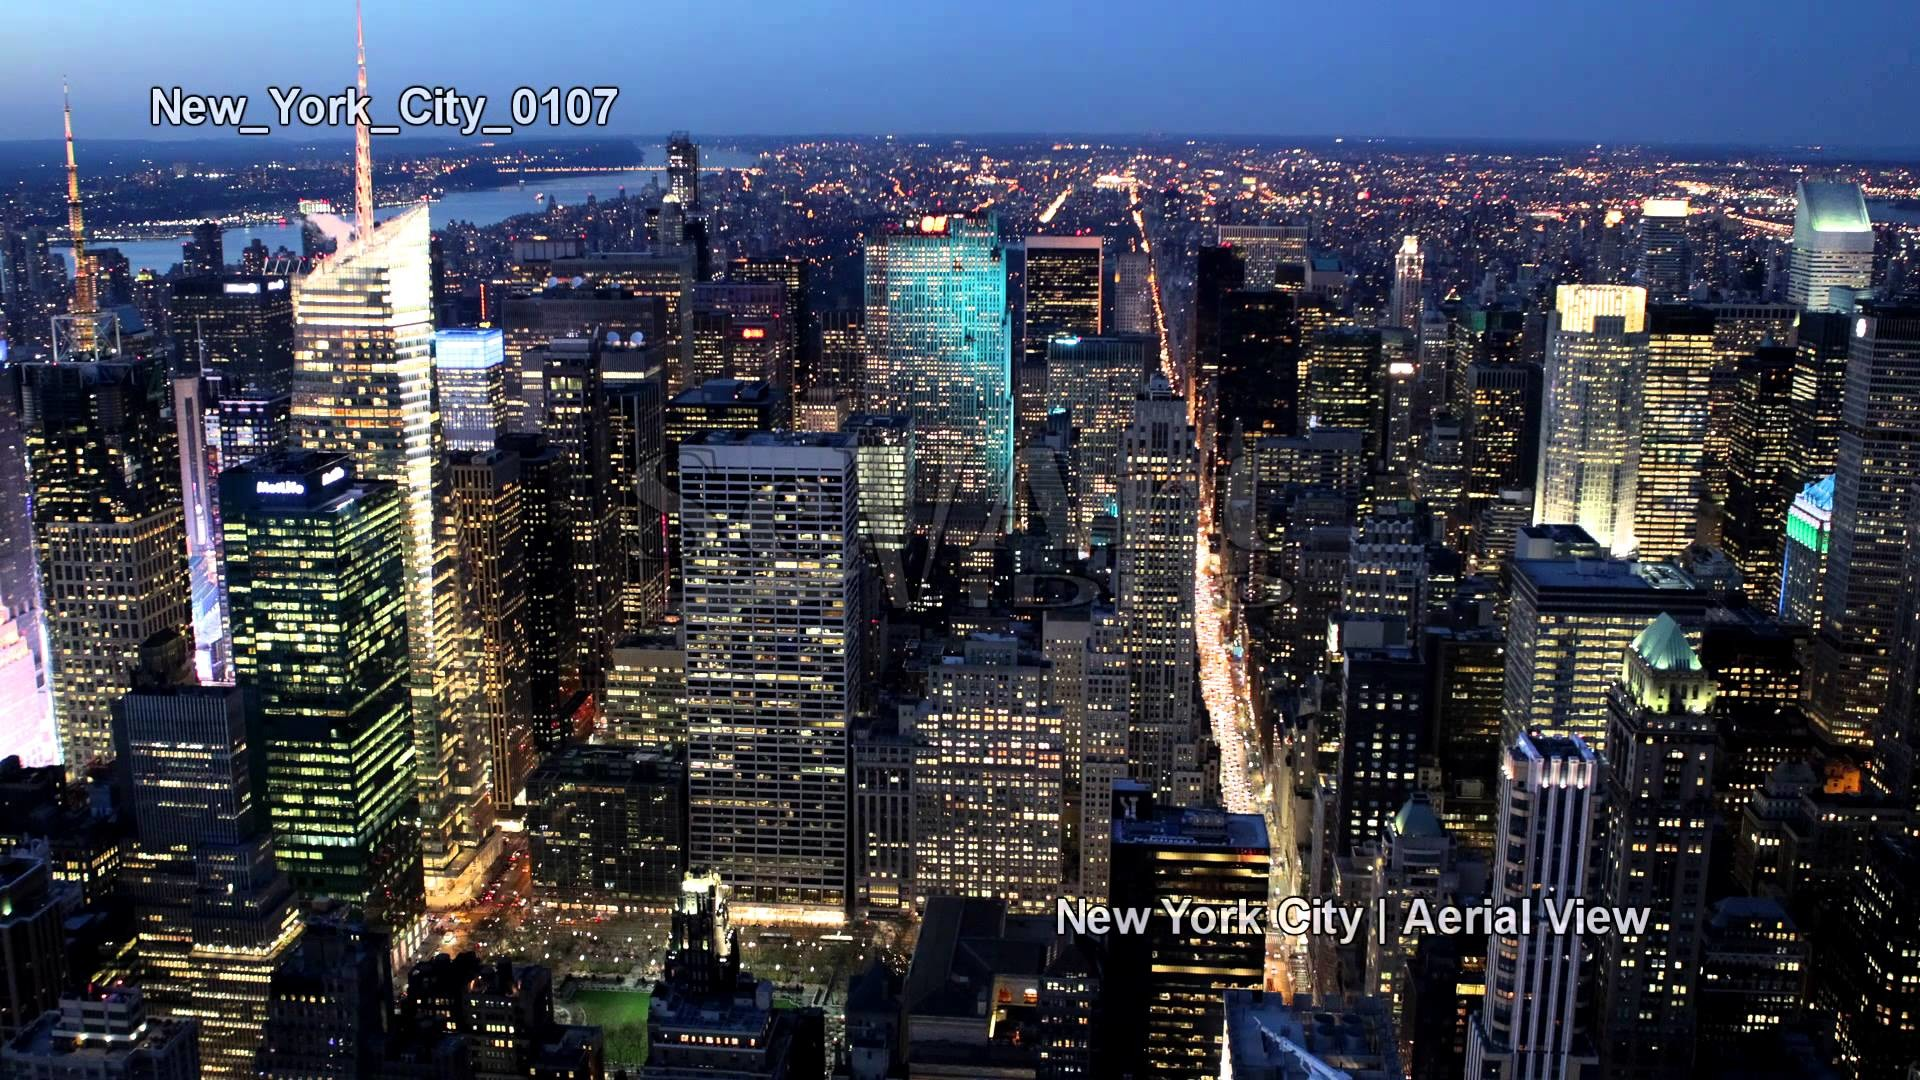 2048x1266 New York City Street Wallpaper Photos Hd High Definition Windows 10 Mac Apple Colourful Images Backgrounds